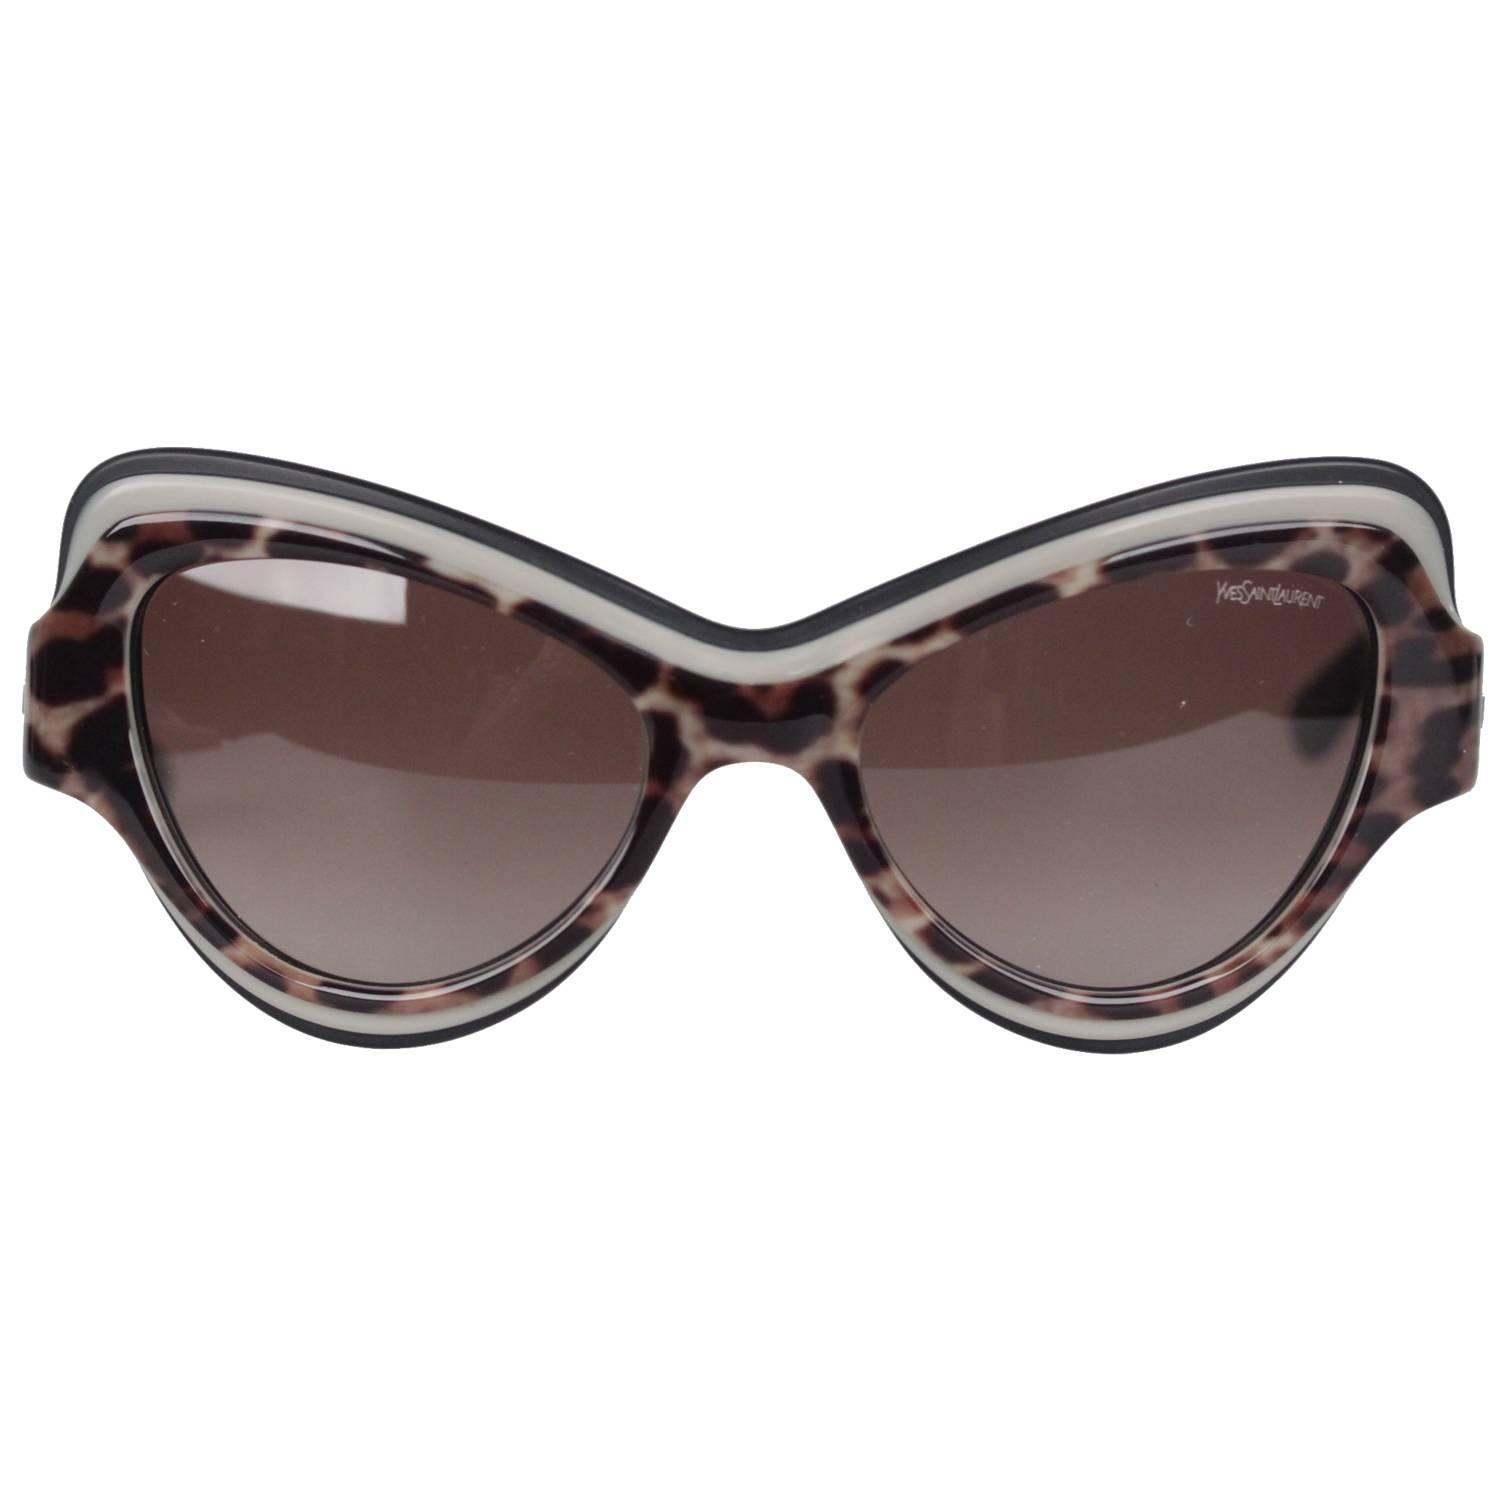 235abfe8ca4c YVES SAINT LAURENT Cat-Eye Sunglasses YSL 6366/S 53mm 135 MINT and BOXED  For Sale at 1stdibs